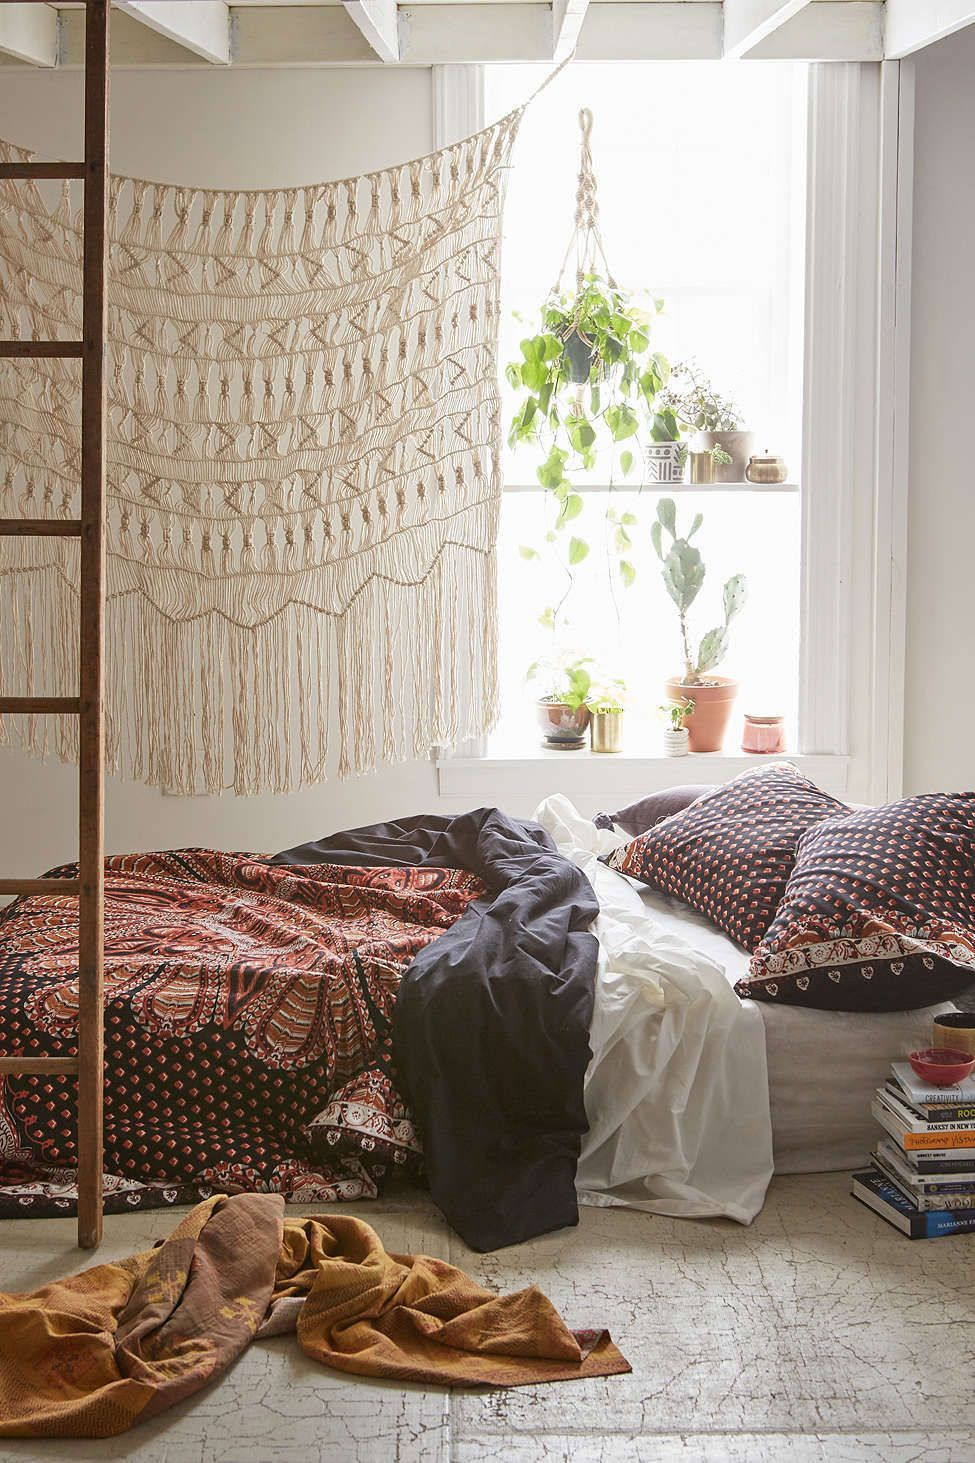 Boho Bedroom Dreamy Boho Bedroom Daily Dream Decor Design Bohemian Room